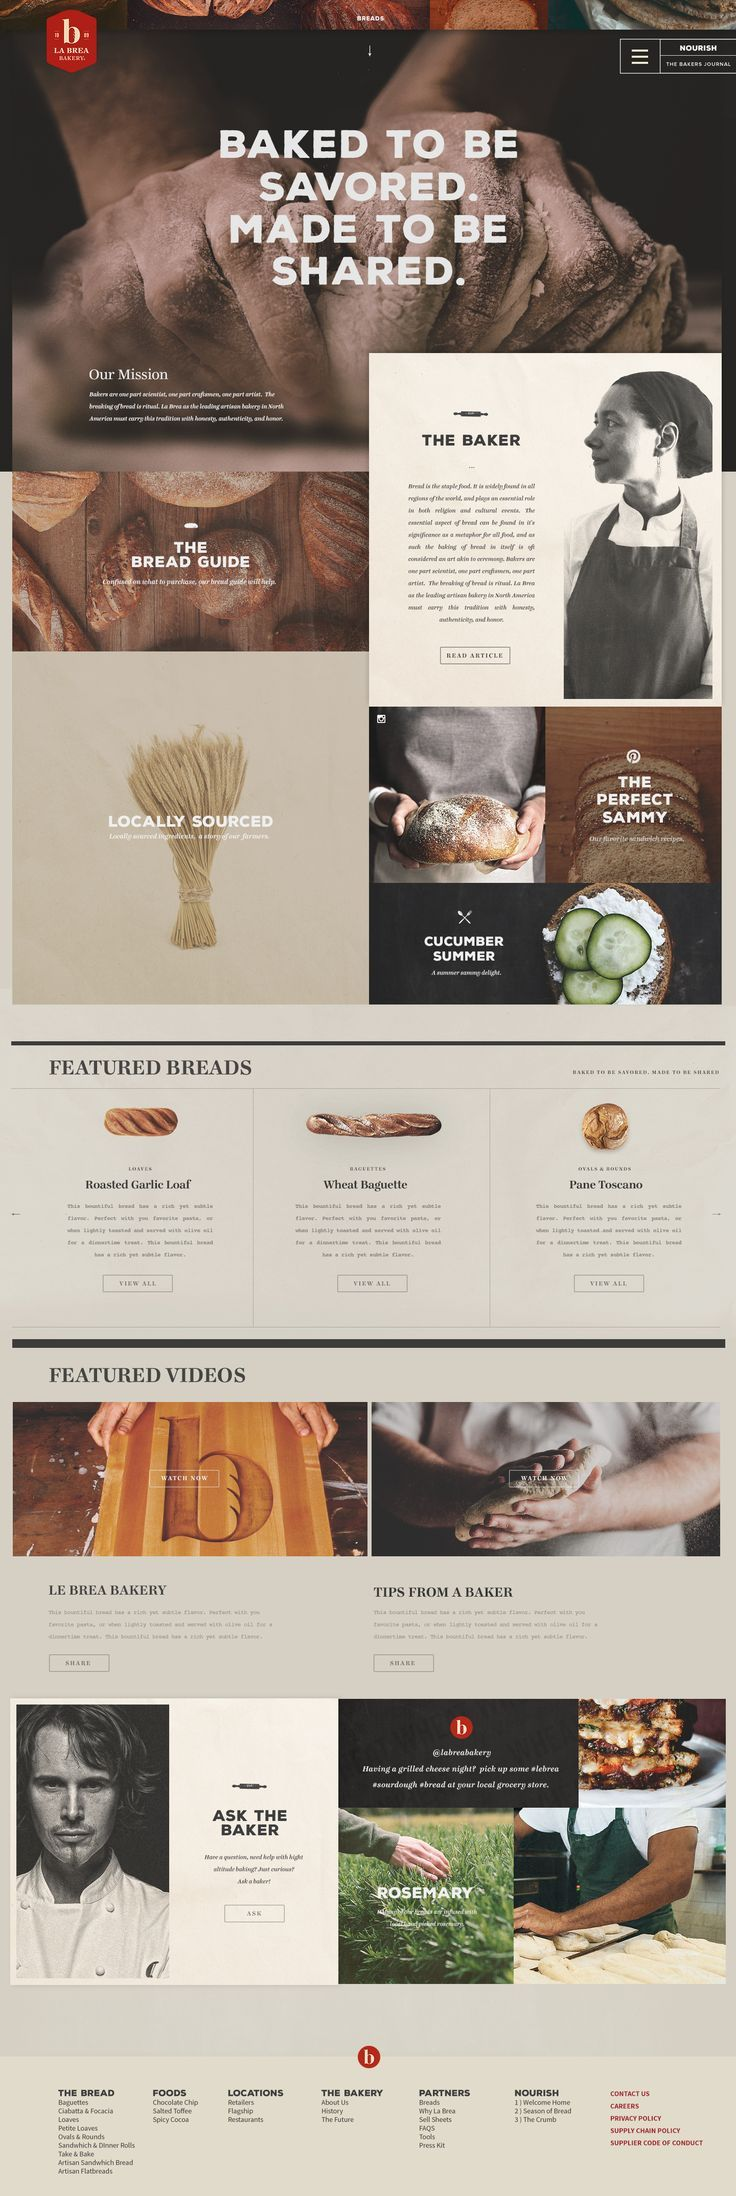 LA BREA Bakery Website Design  http://www.shareasale.com/r.cfm?B=791843&U=1611319&M=37723&urllink=